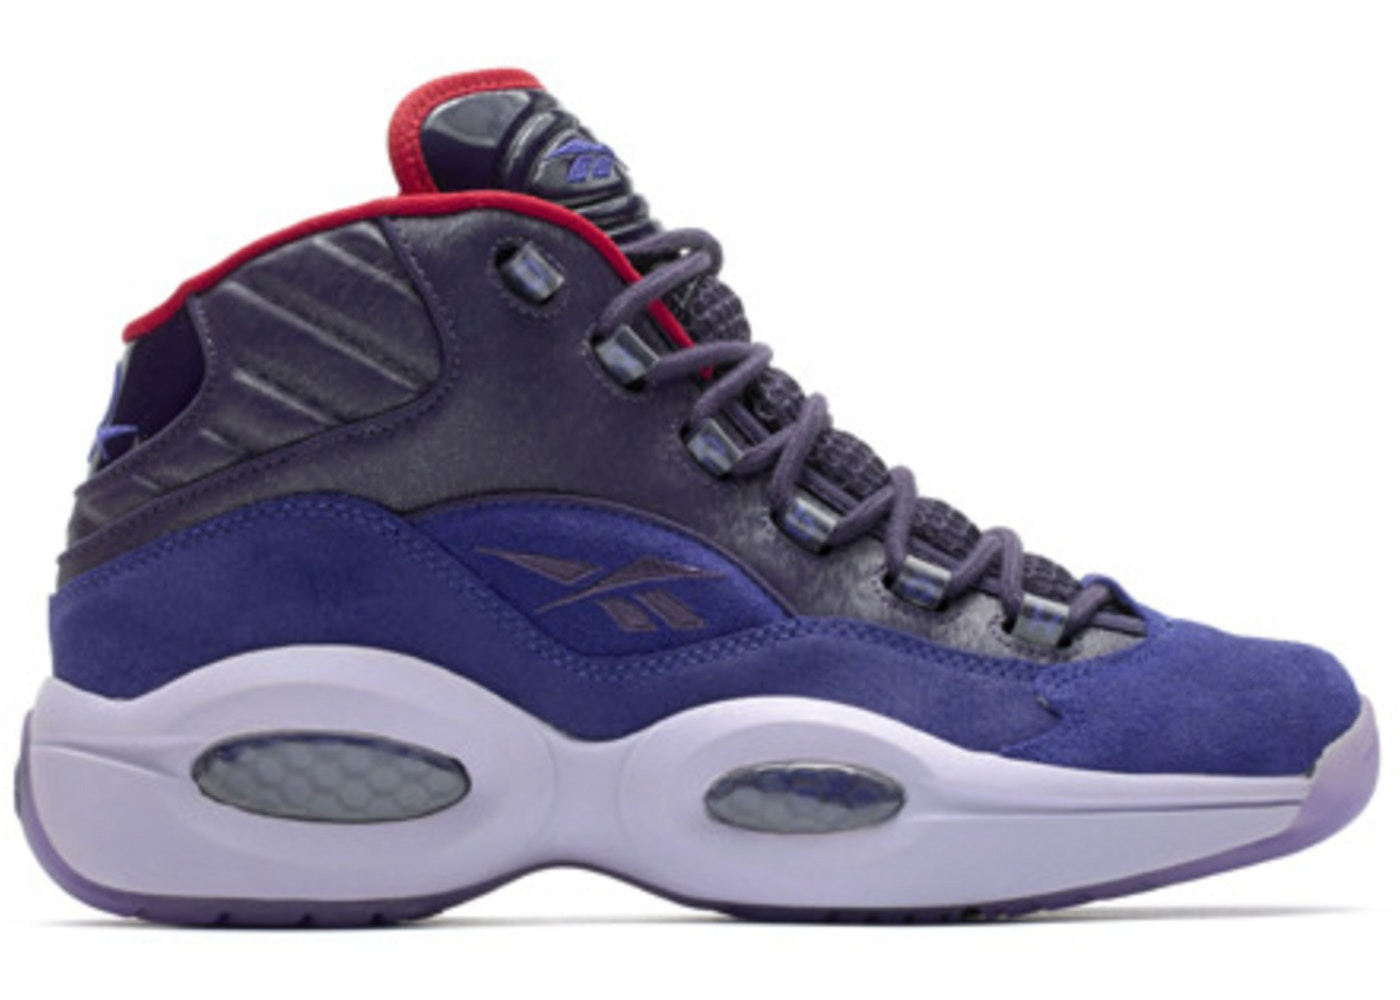 1e4bc6ae8db4 Reebok Question Mid Ghost of Chritmas Future - V61429